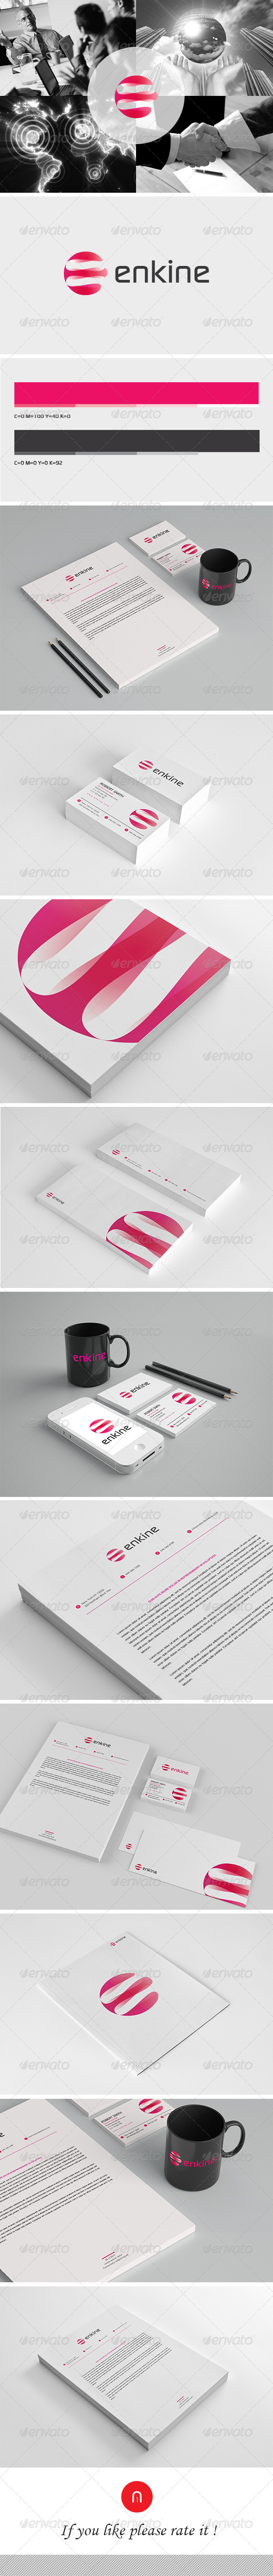 GraphicRiver Stationary & Brand Identity Enkine 3531699